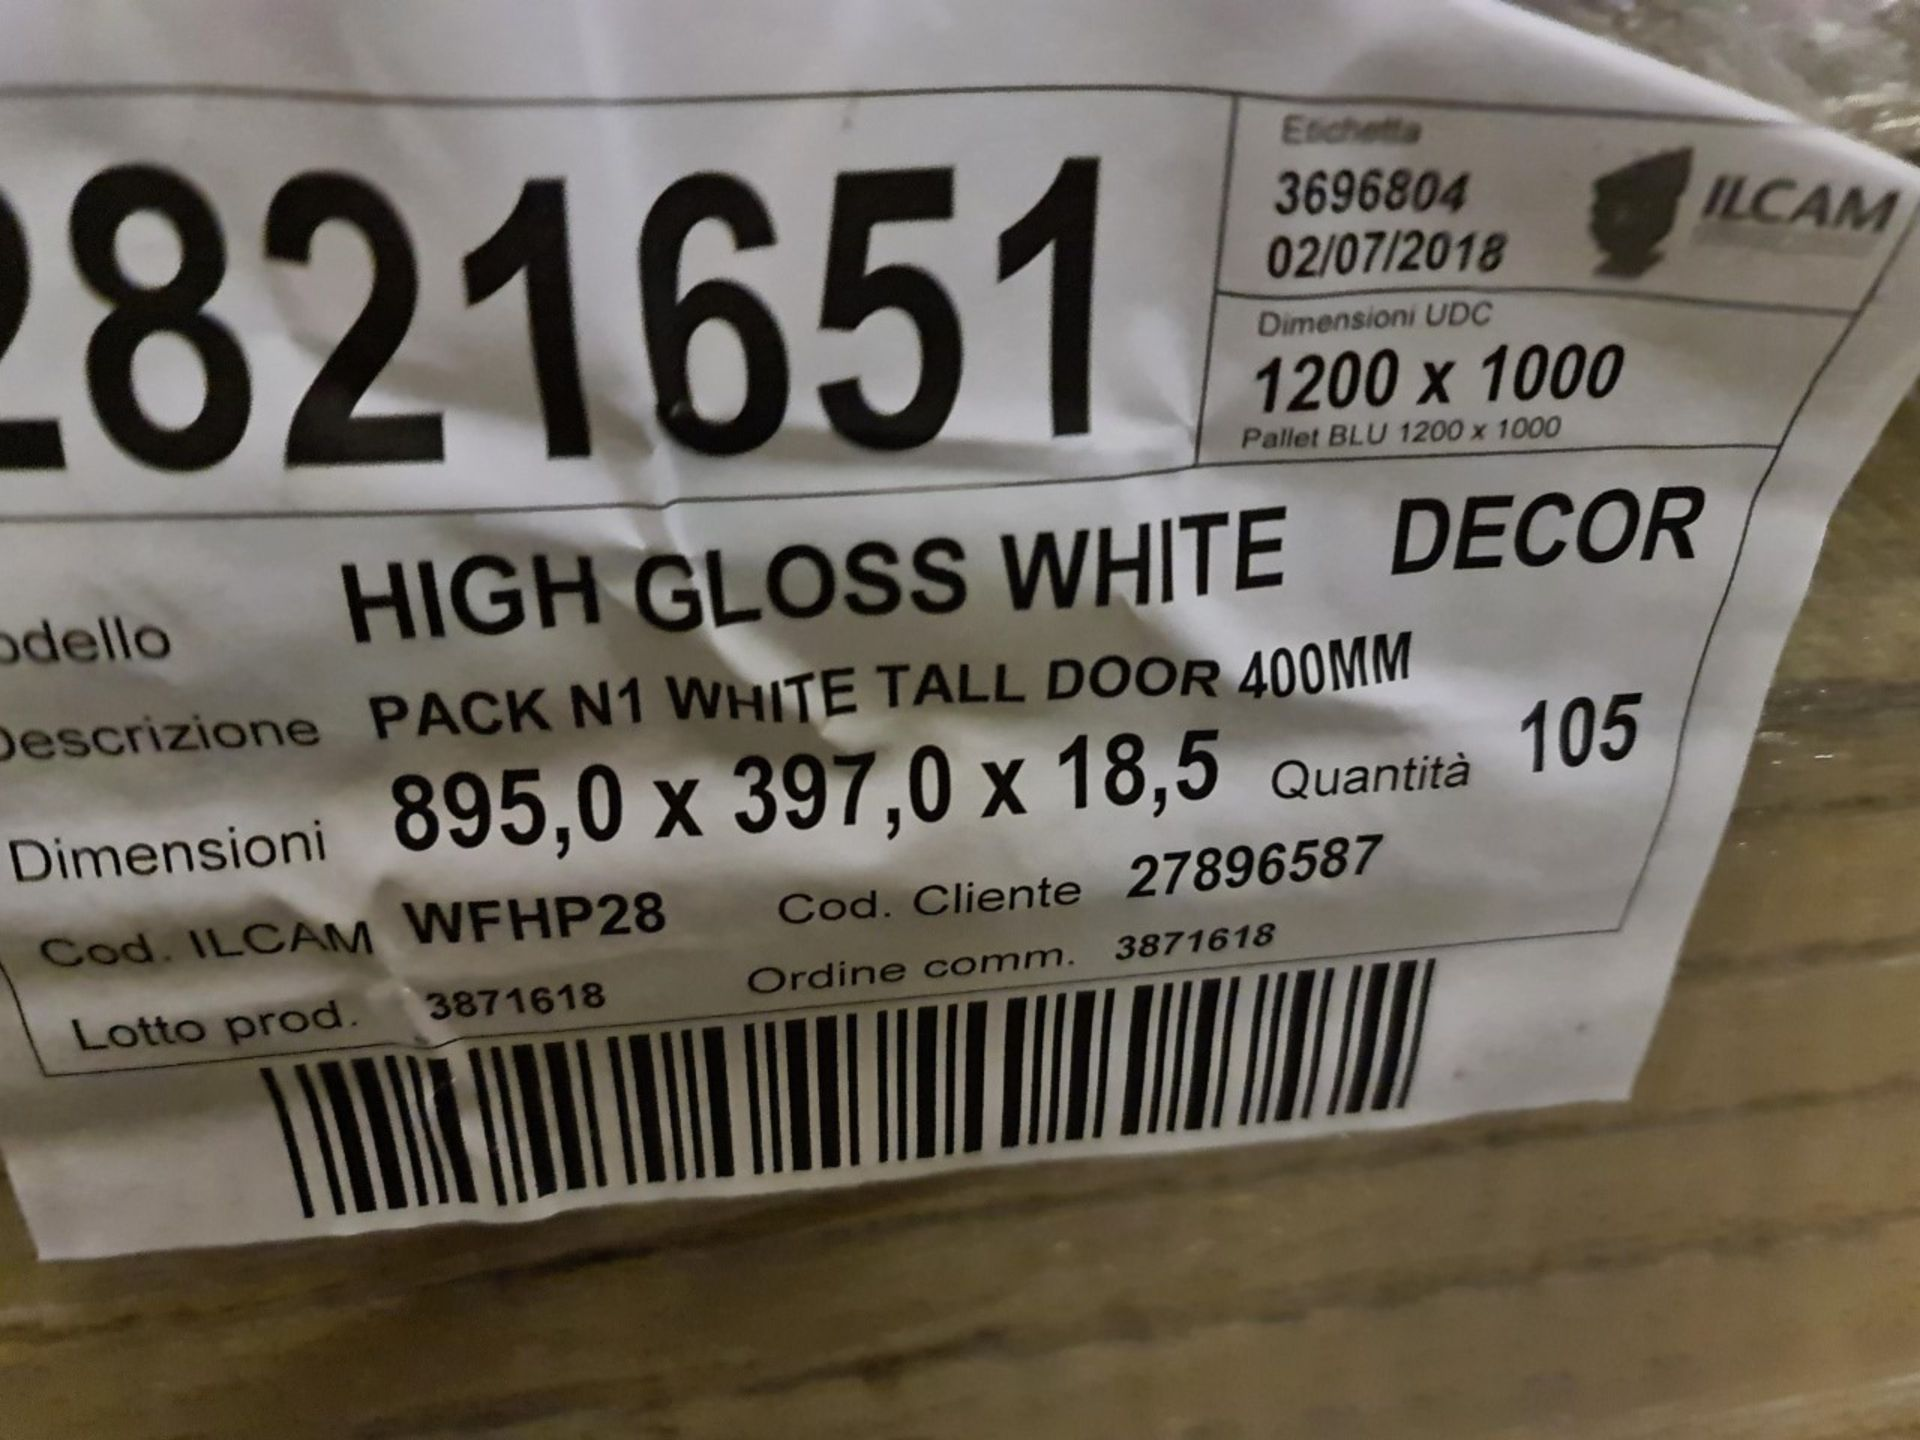 Circa 4,559 items of Kitchen Goods from the following ranges: Gloss White, Westleigh Textured Oak - Image 20 of 21